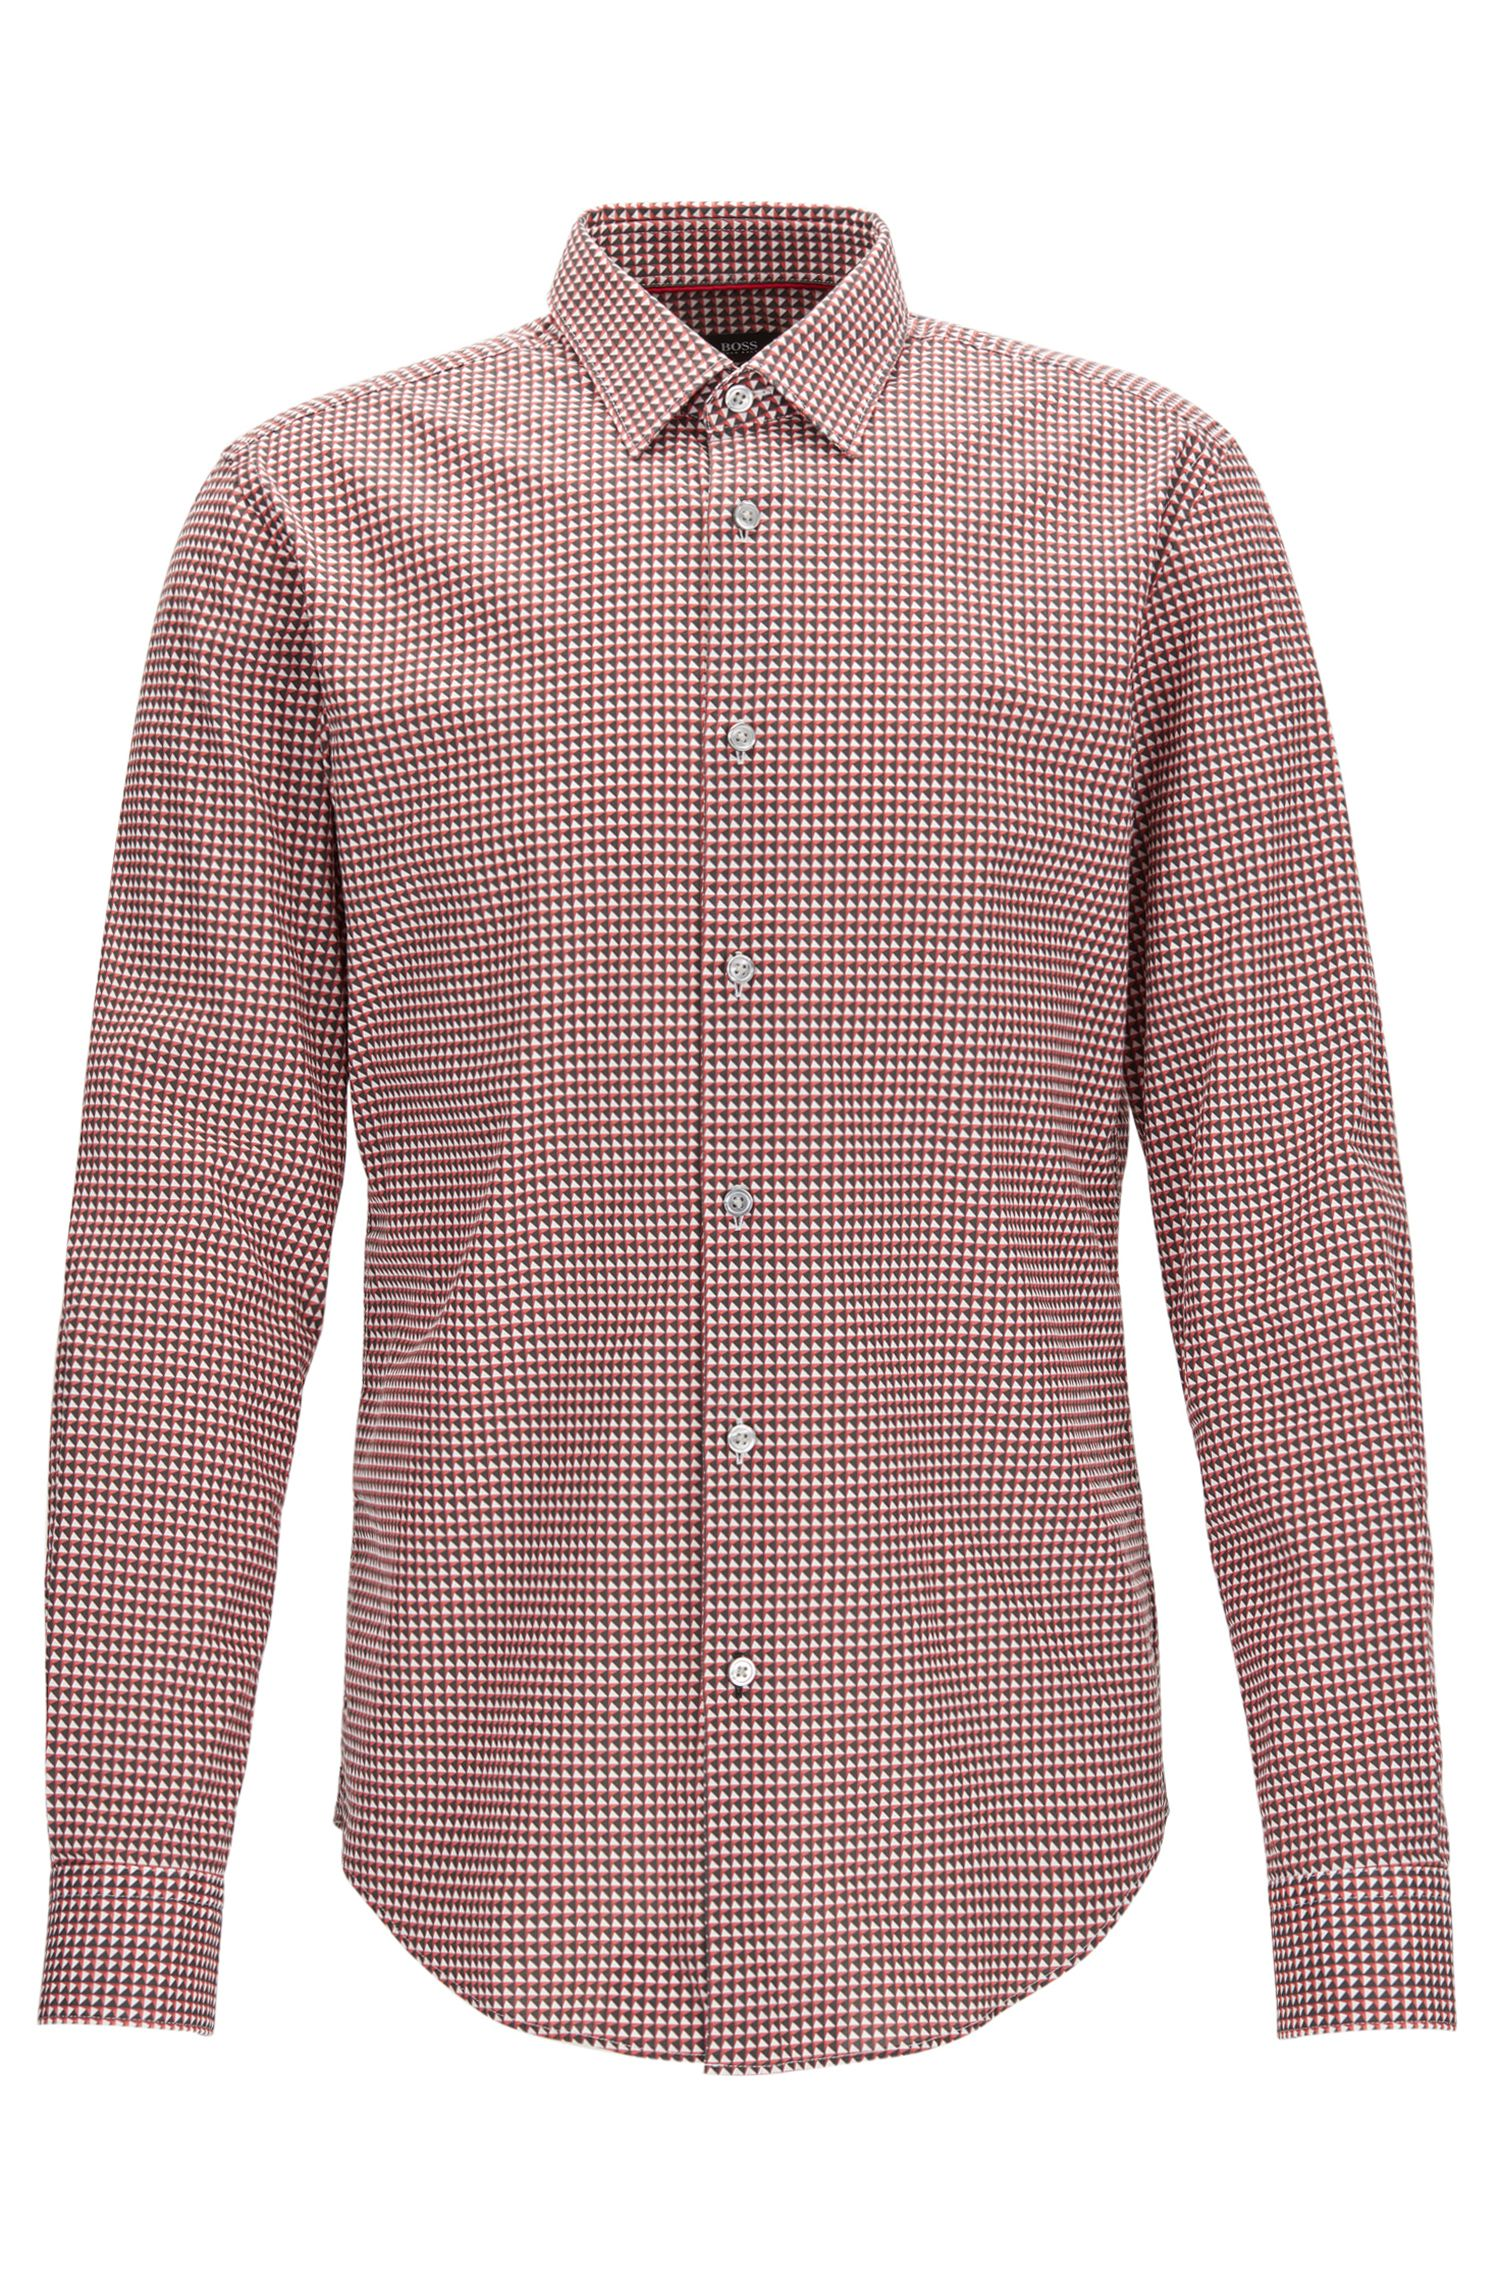 Geometric Stretch Cotton Sport Shirt, Slim Fit | Ronni F